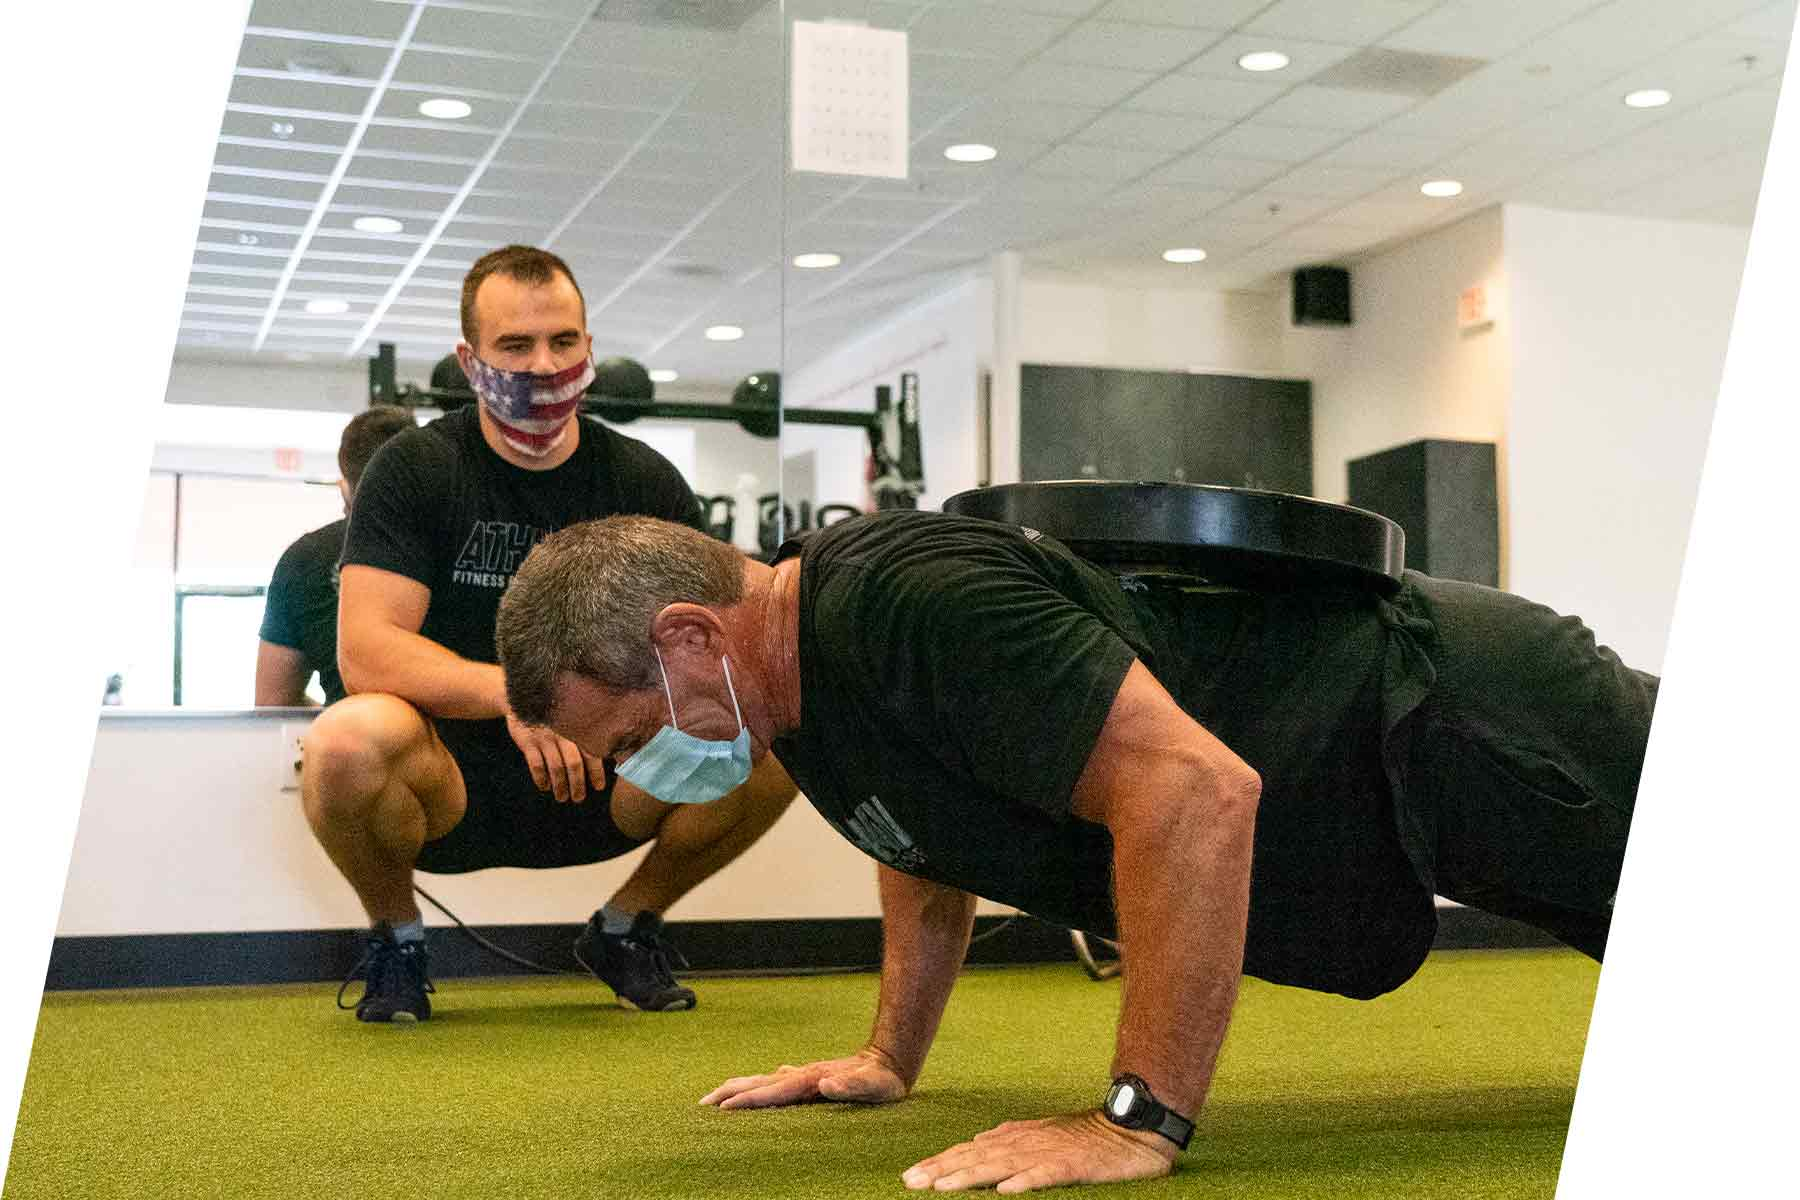 Athlon Elite Fitness-older-man-doing-a-plank